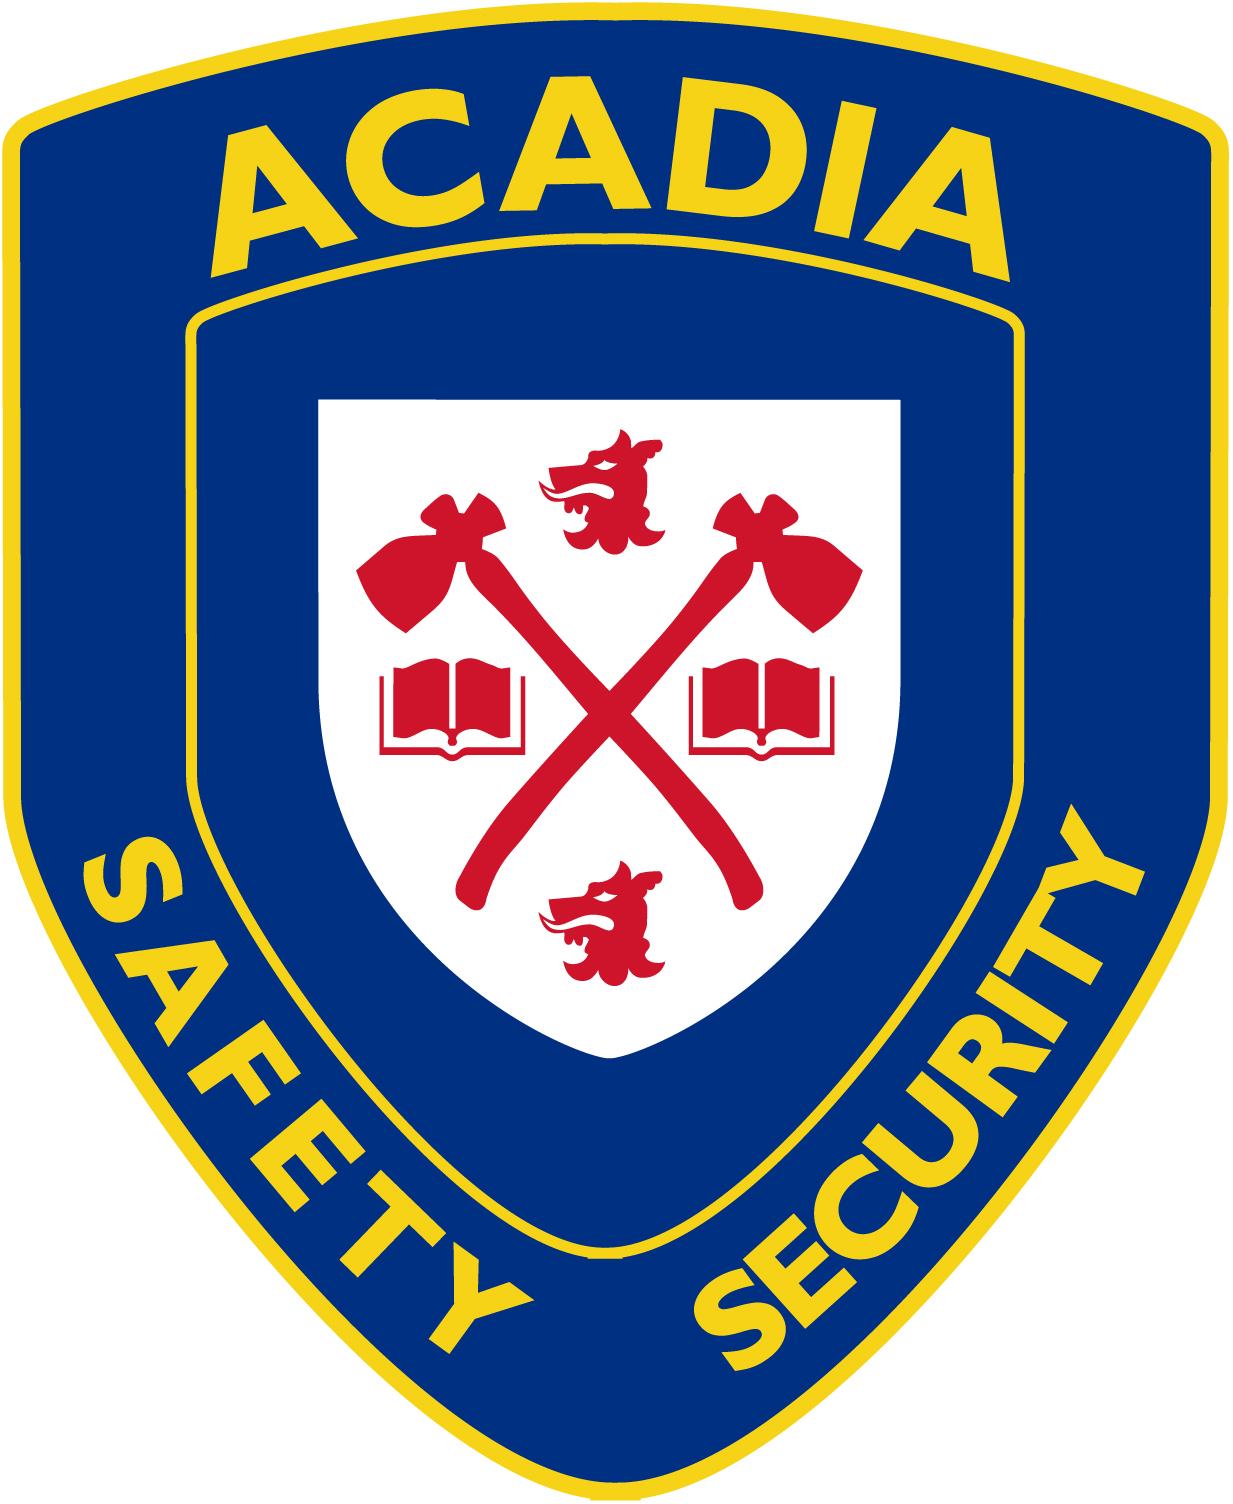 Security And Safety Logo Acadia Safety And Security